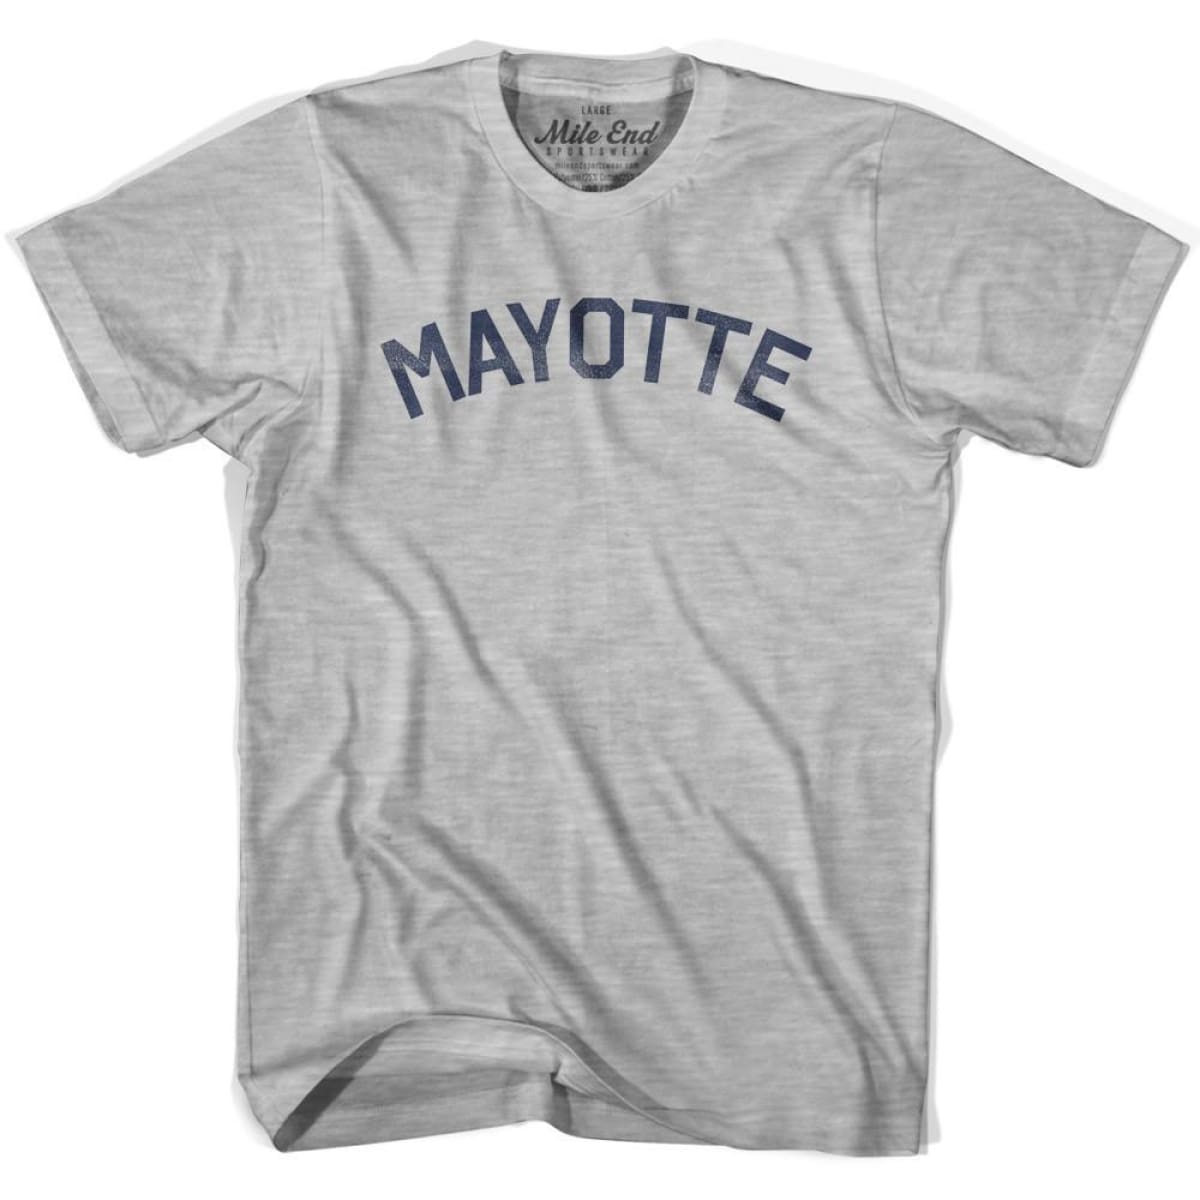 Mayotte City Vintage T-shirt - Grey Heather / Youth X-Small - Mile End City